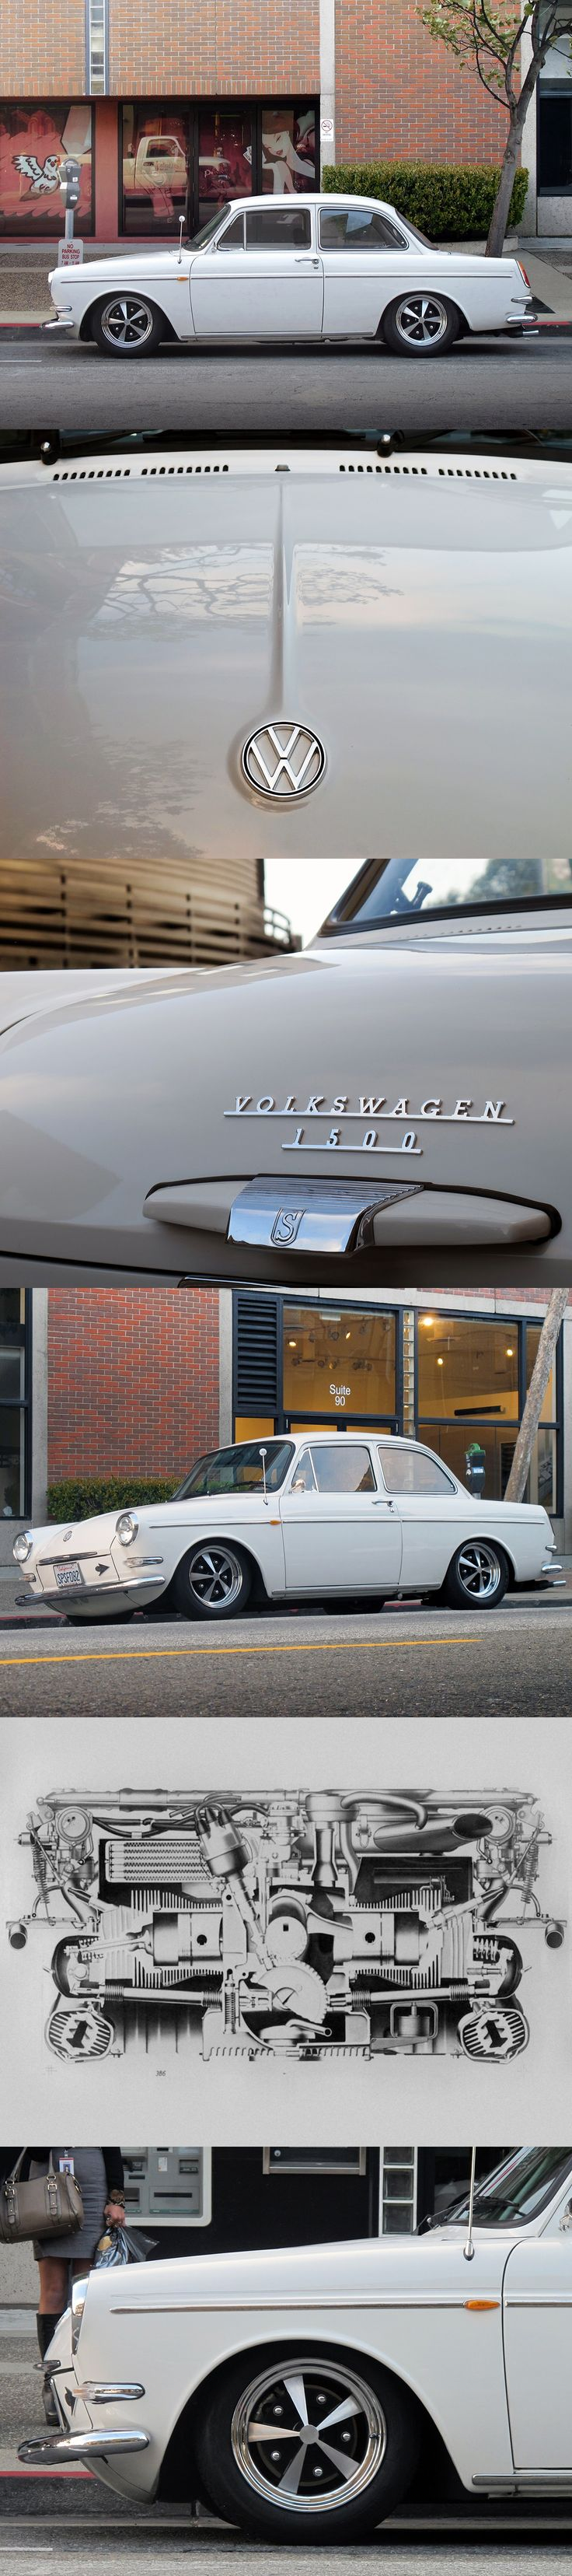 Volkswagen Type 3 Notchback | 1964  The Type 3 comes from an era when cars were more friendly in their appearance. And an example from 1964 is quite special considering the US didn't even start importing the Type 3 until 1966. Powered by a 1500cc air-cooled flat-4, the Type 3 was also produced as a wagon and a fastback. Collect them all.